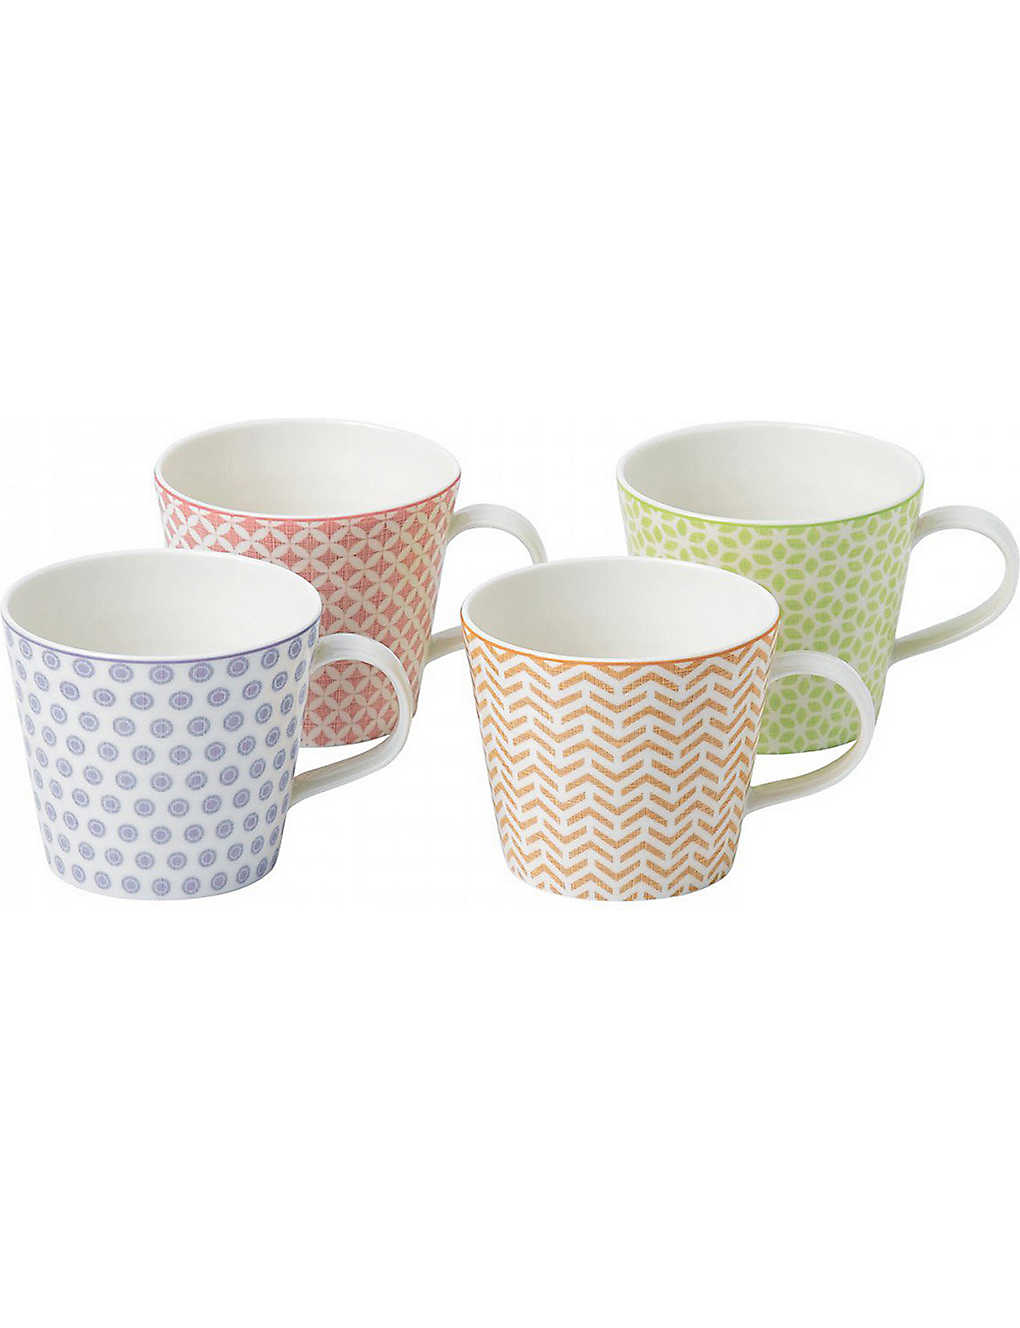 ROYAL DOULTON: Pastel Accent set of four mugs